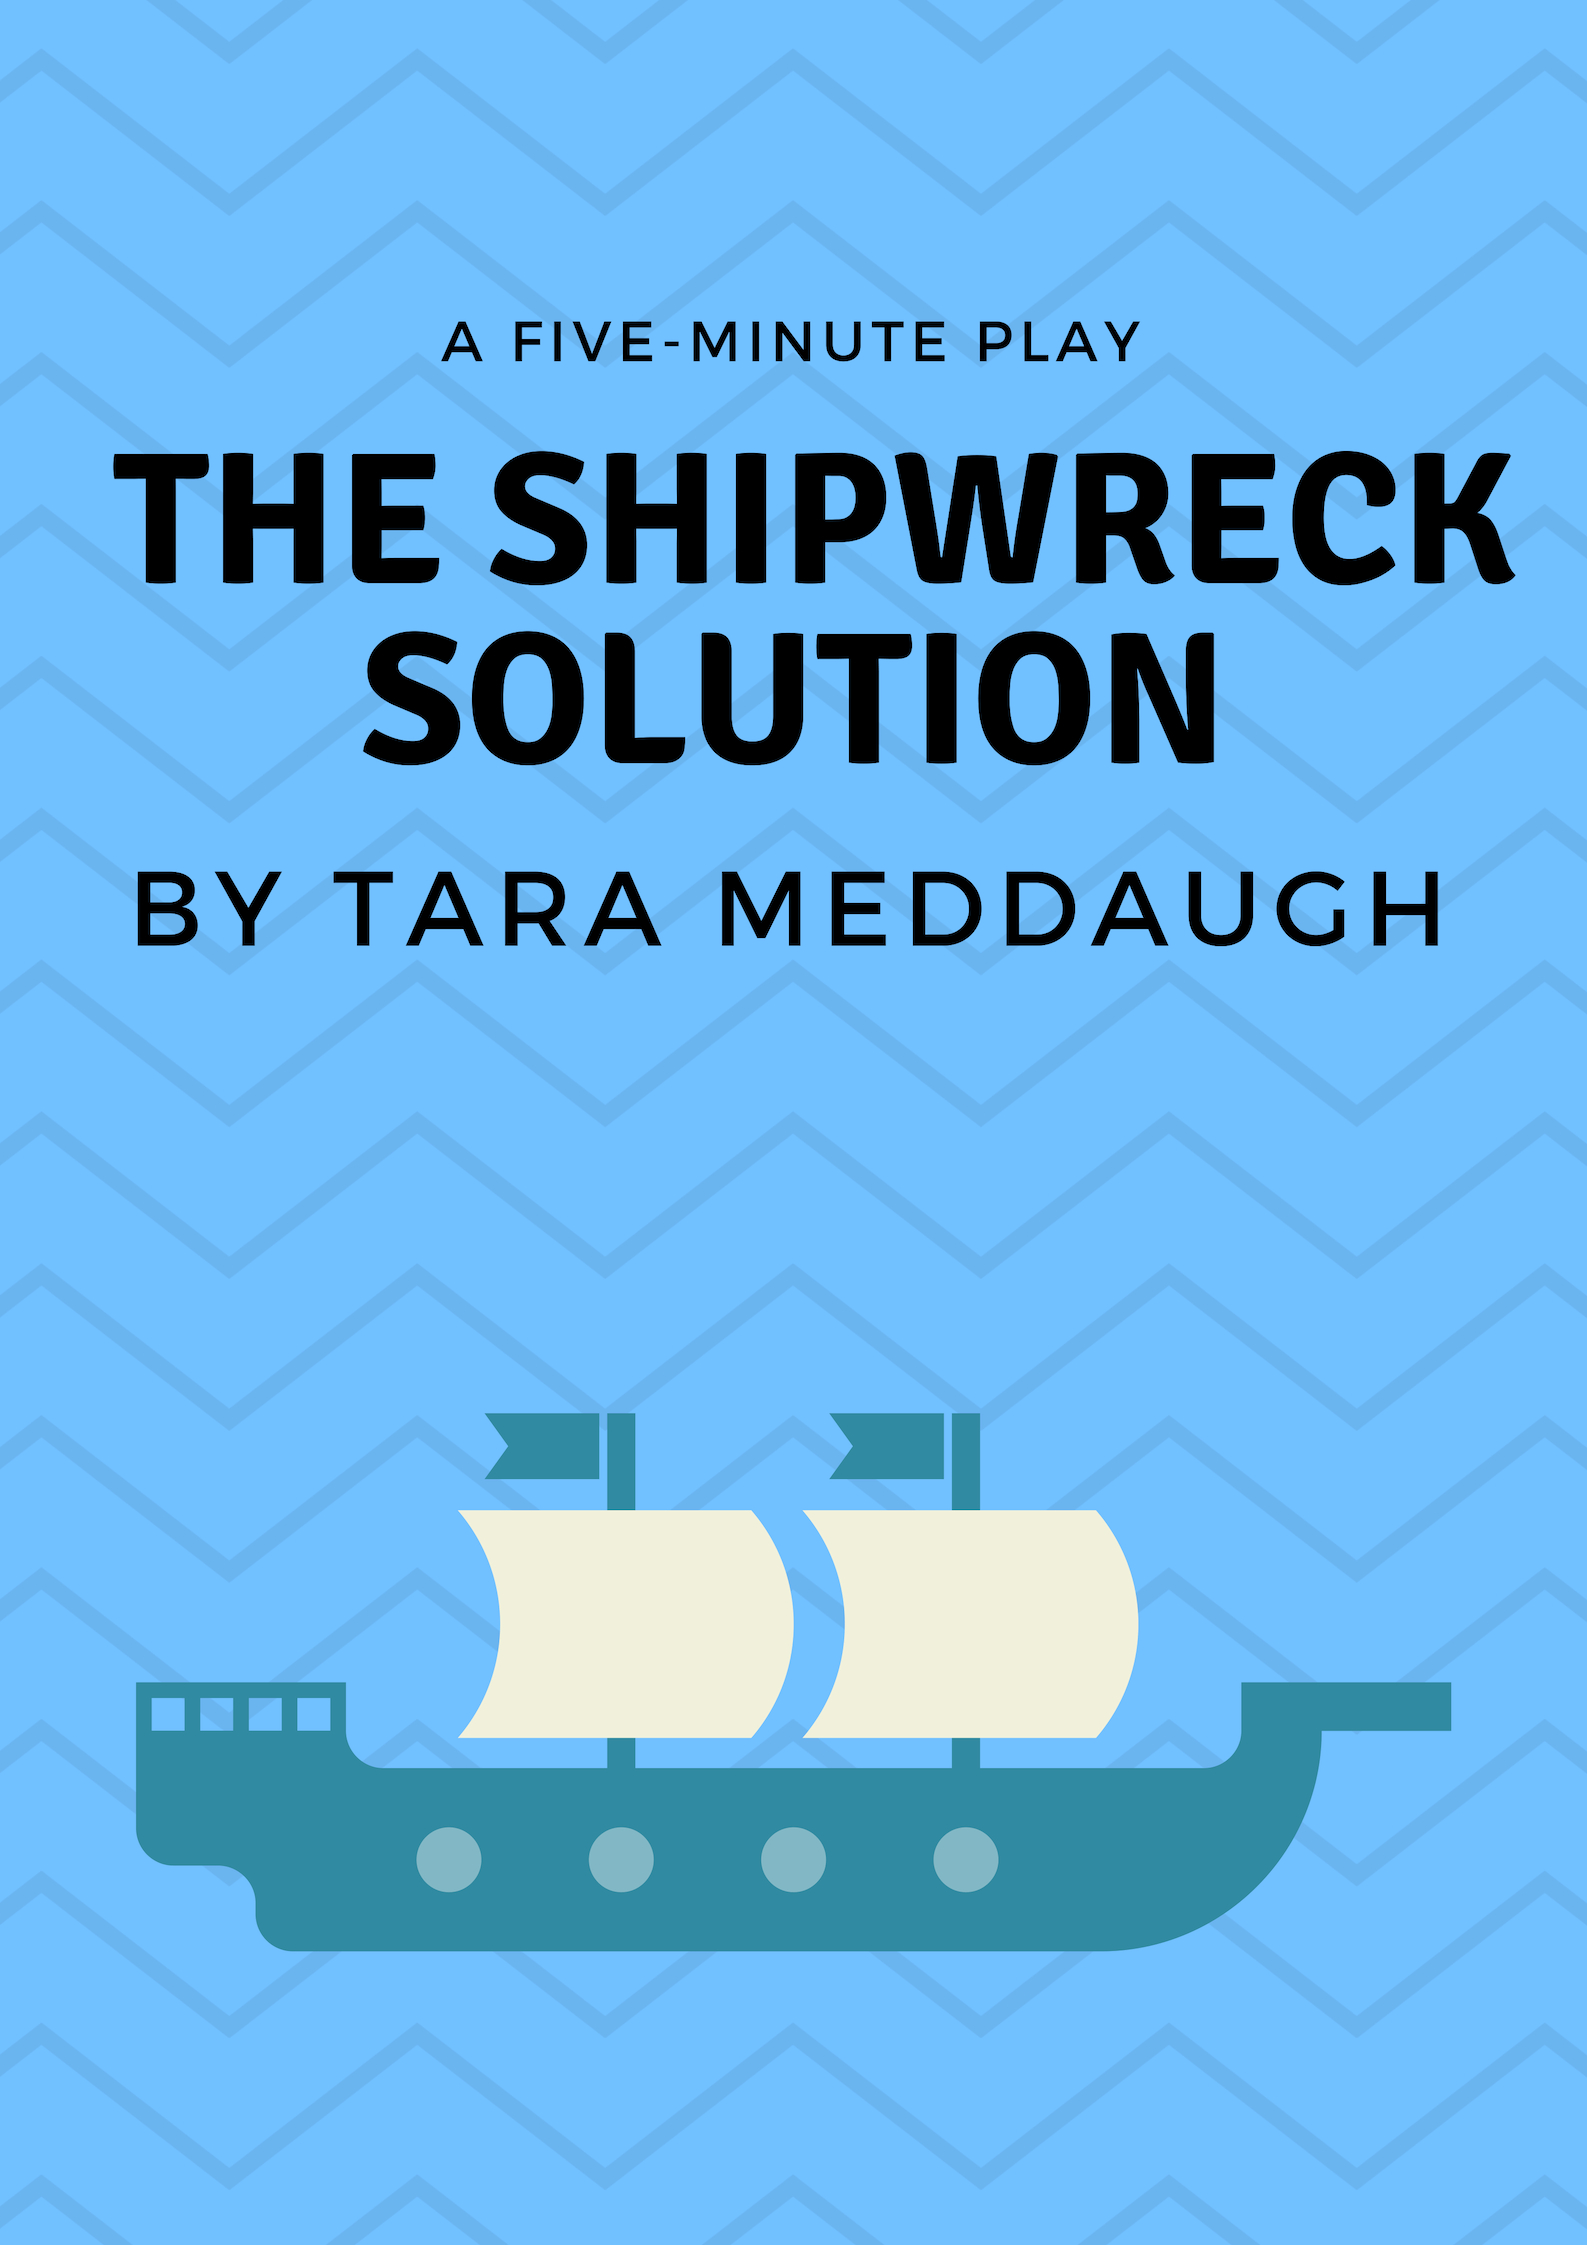 The Shipwreck Solution.jpg